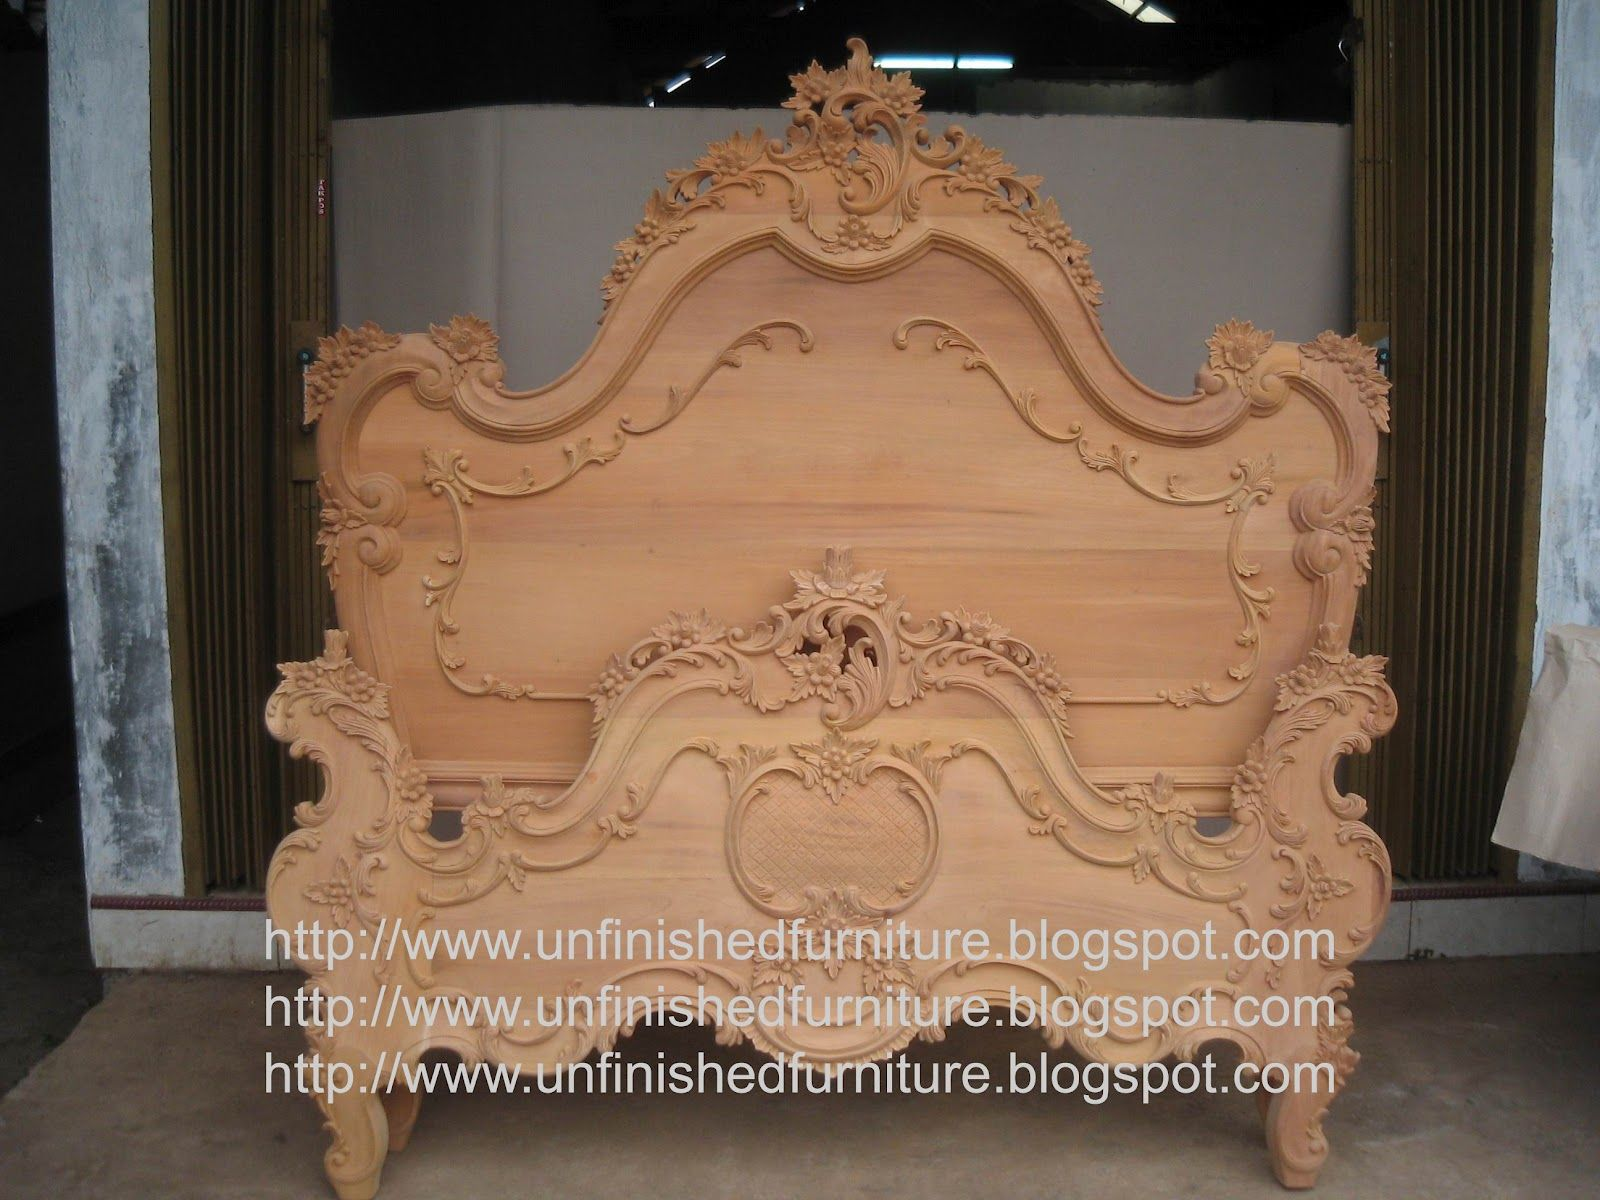 Unfinished Classic Furniture Heavy Carved French Mahogany Bed